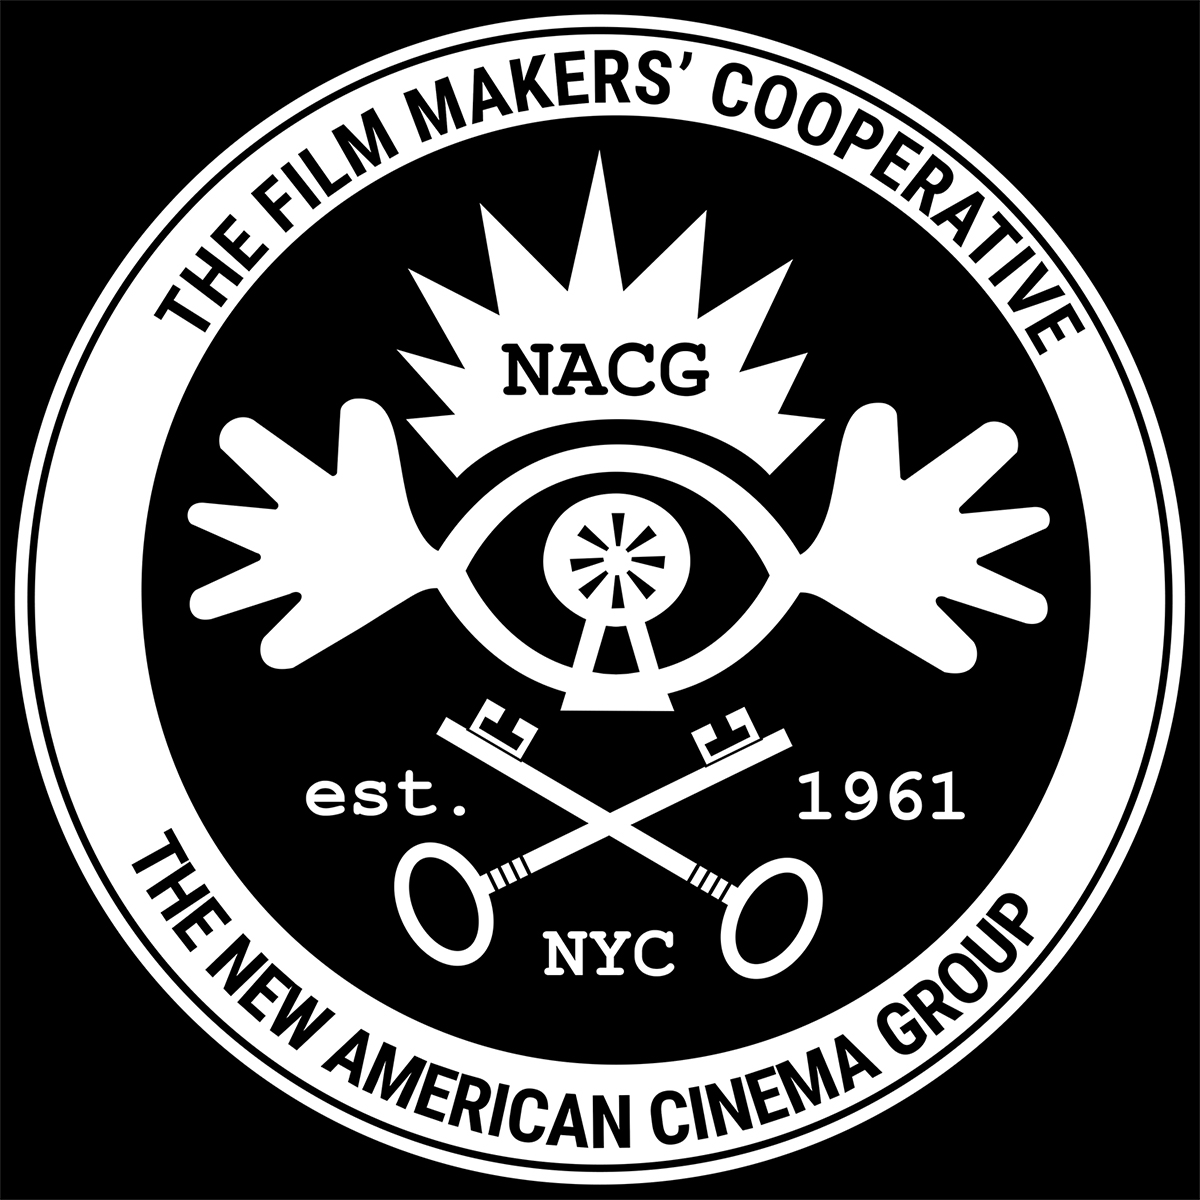 Filmmakers' Cooperative (The New American Cinema Group, Inc.)